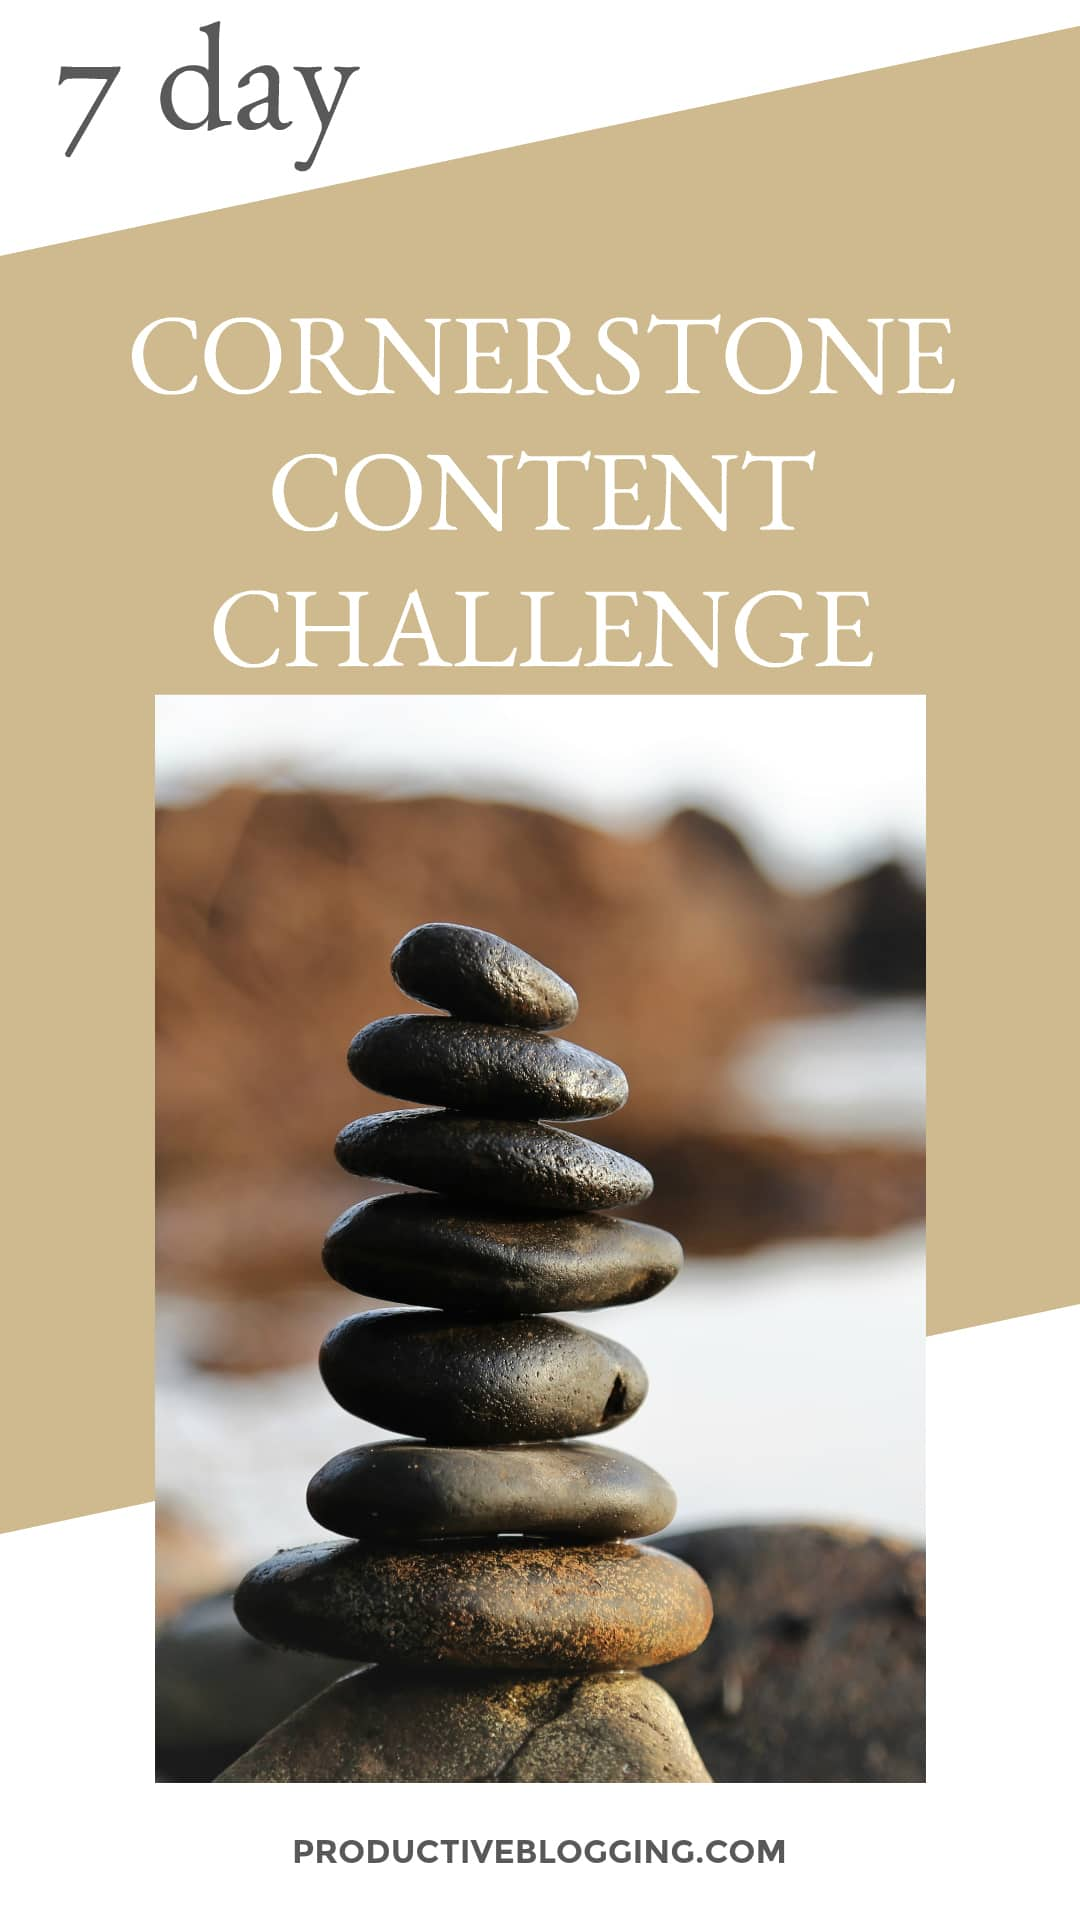 7 Day Cornerstone Content Challenge - Productive Blogging